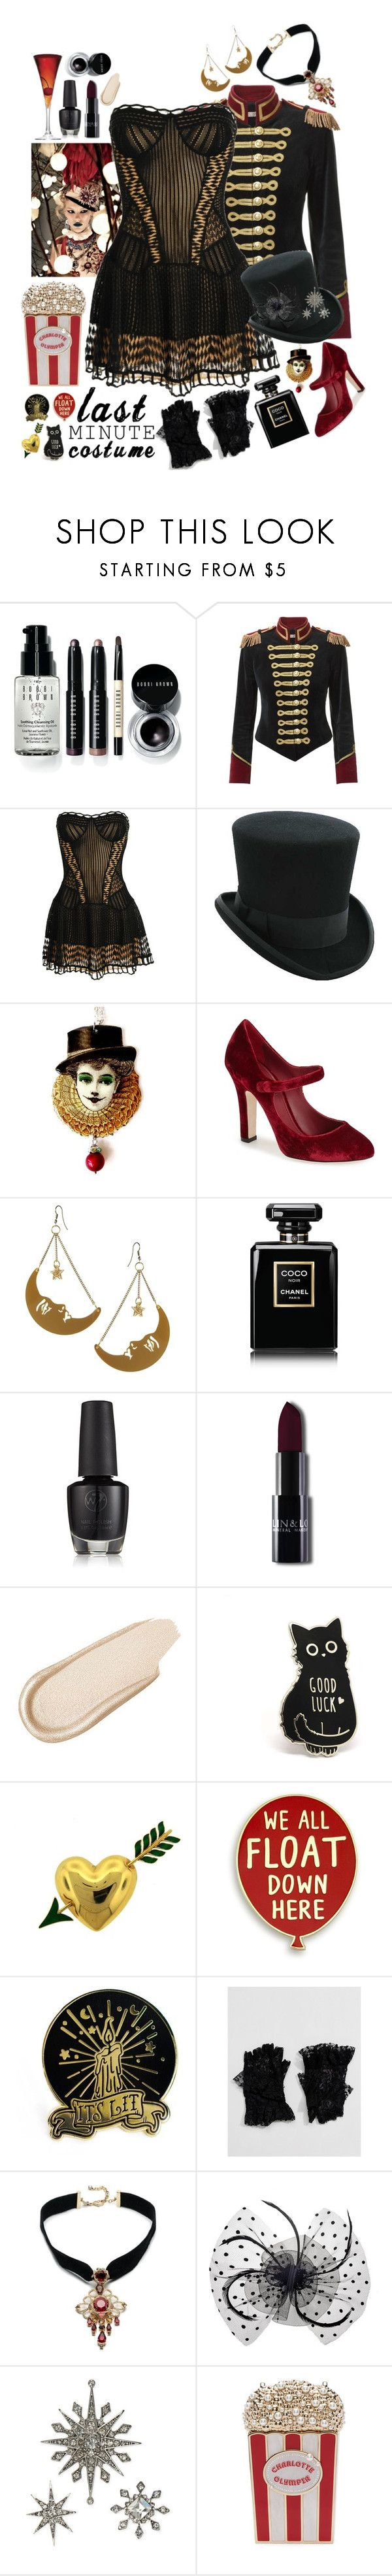 """To The Circus!"" by leo8august ❤ liked on Polyvore featuring Bobbi Brown Cosmetics, Pinky Laing, Christian Dior, Dolce&Gabbana, Tatty Devine, Chanel, Charlotte Russe, Van Cleef & Arpels, ASOS and Carolee"